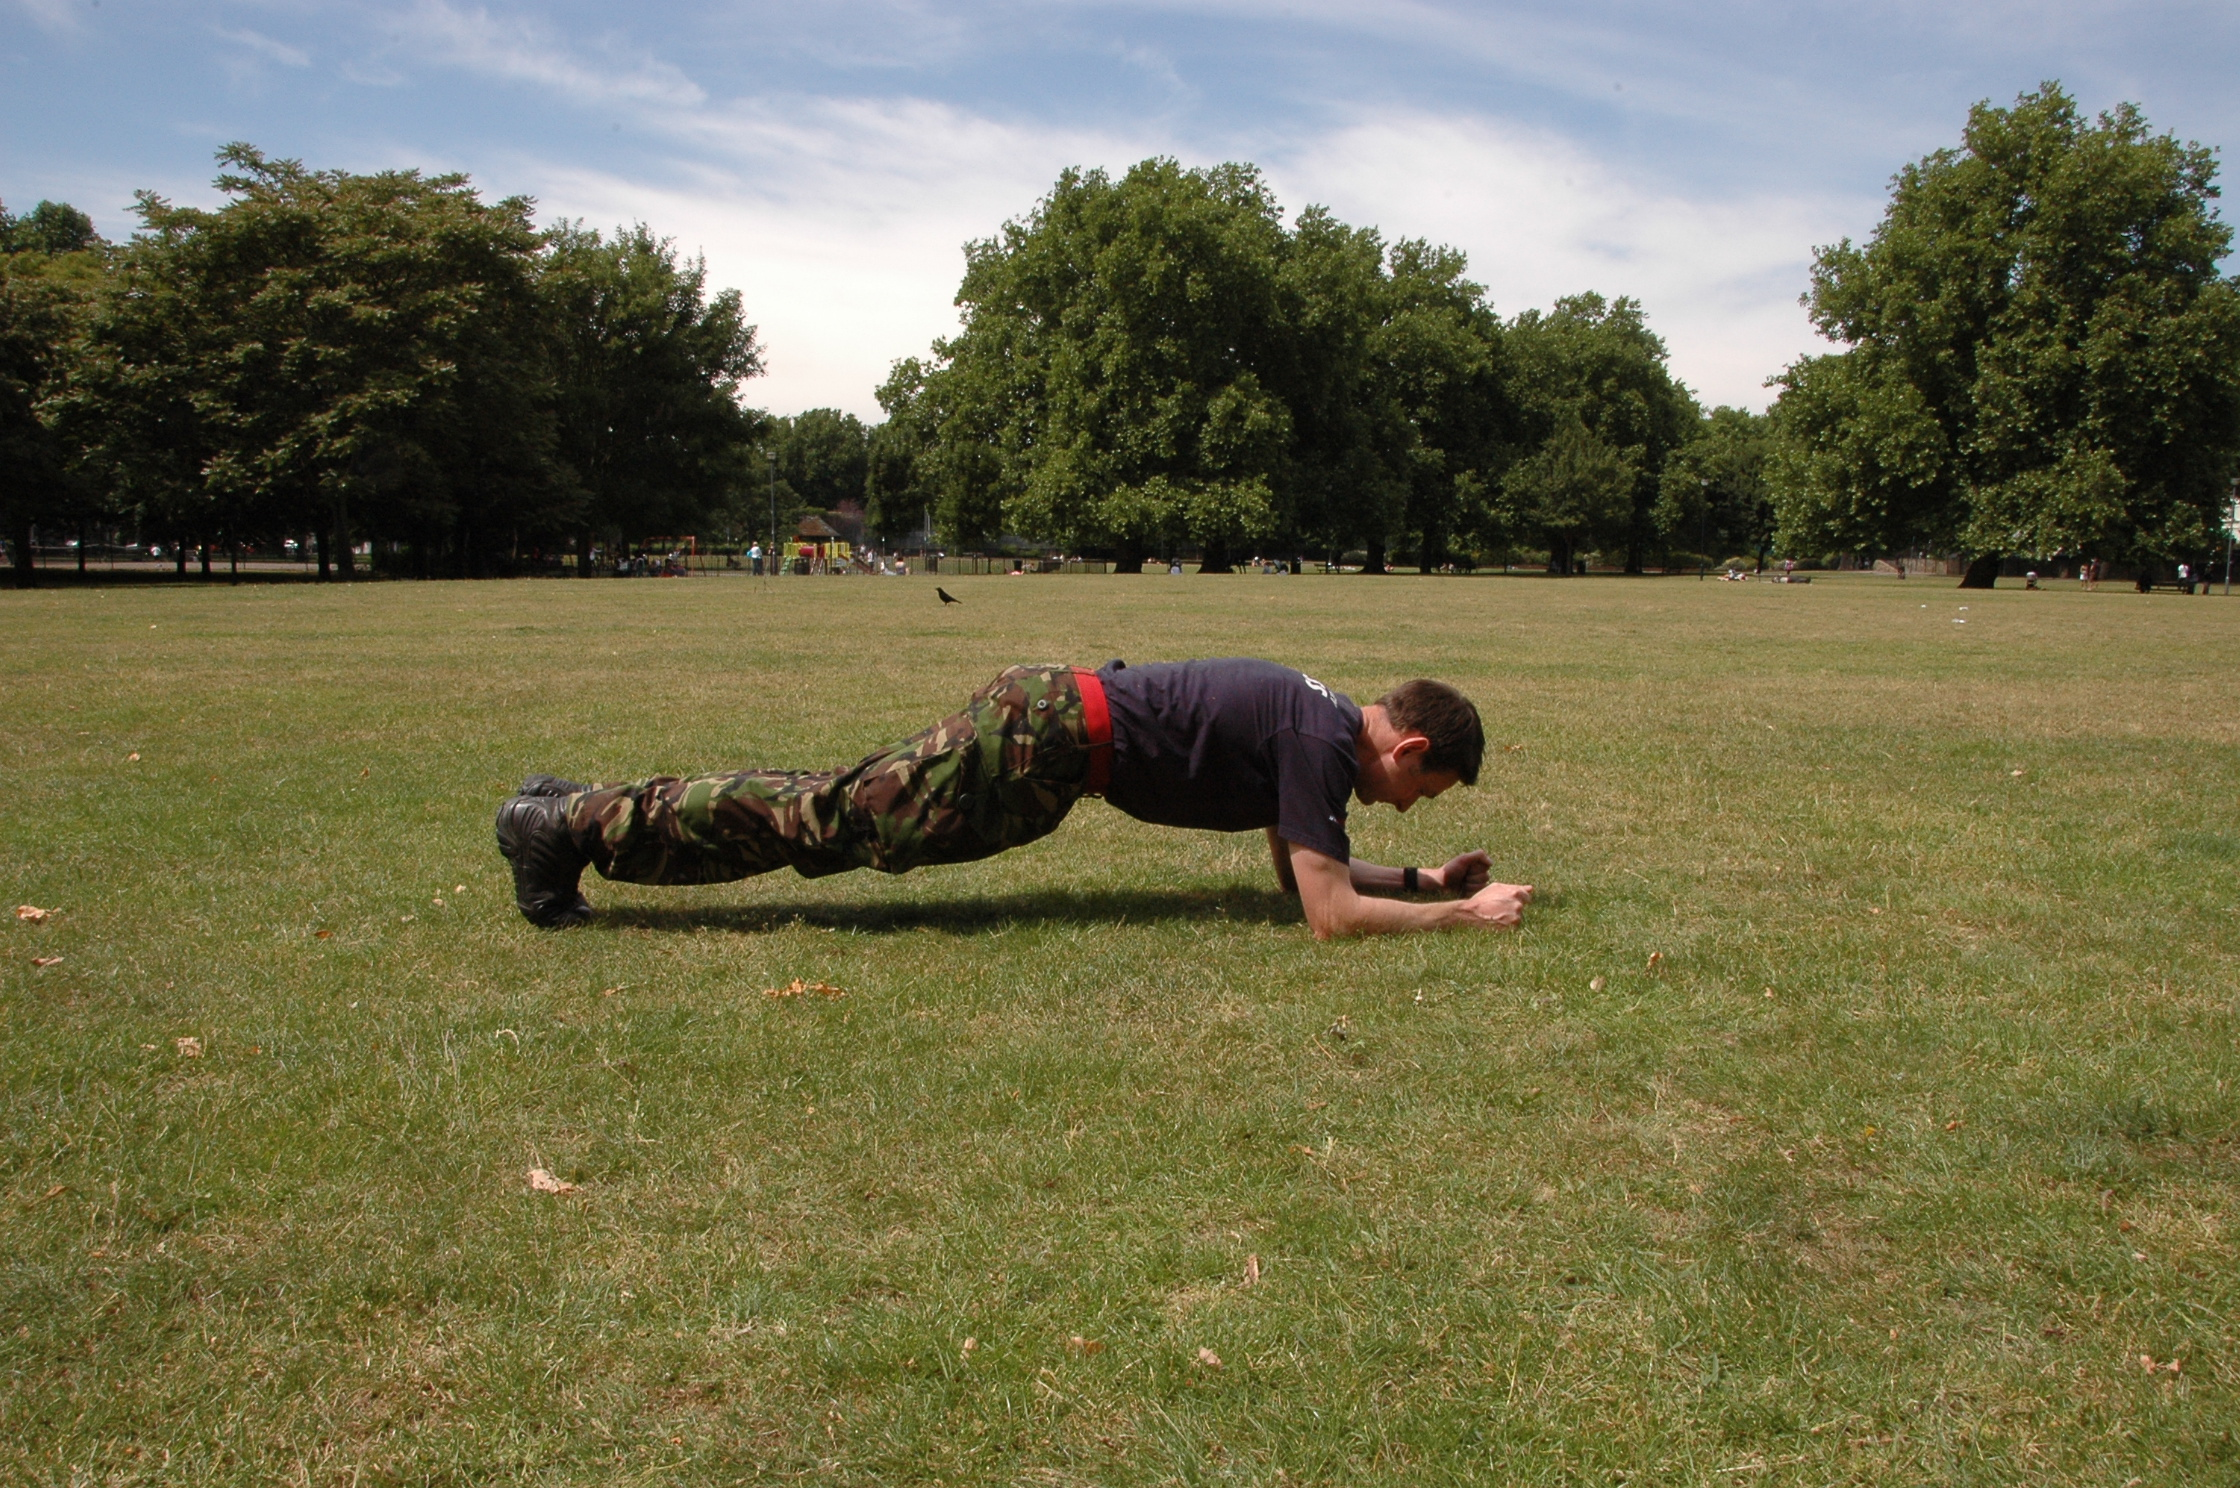 The plank is one of the most effective exercises at increasing your core and lower back strength